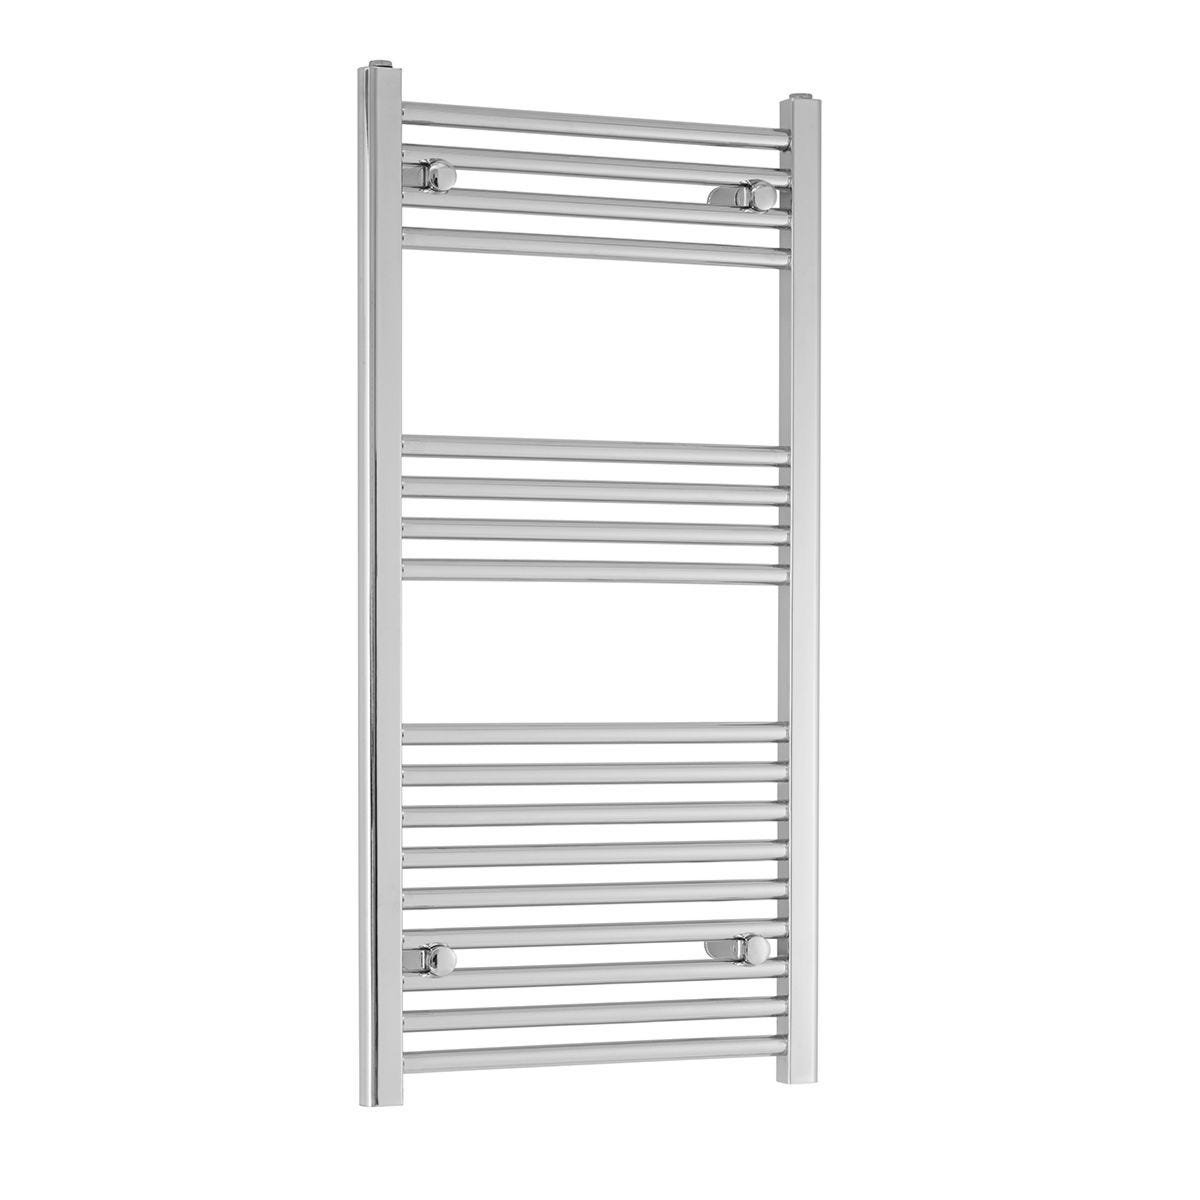 Heating Style Blythe Ladder Rail 800x500mm Straight - Chrome